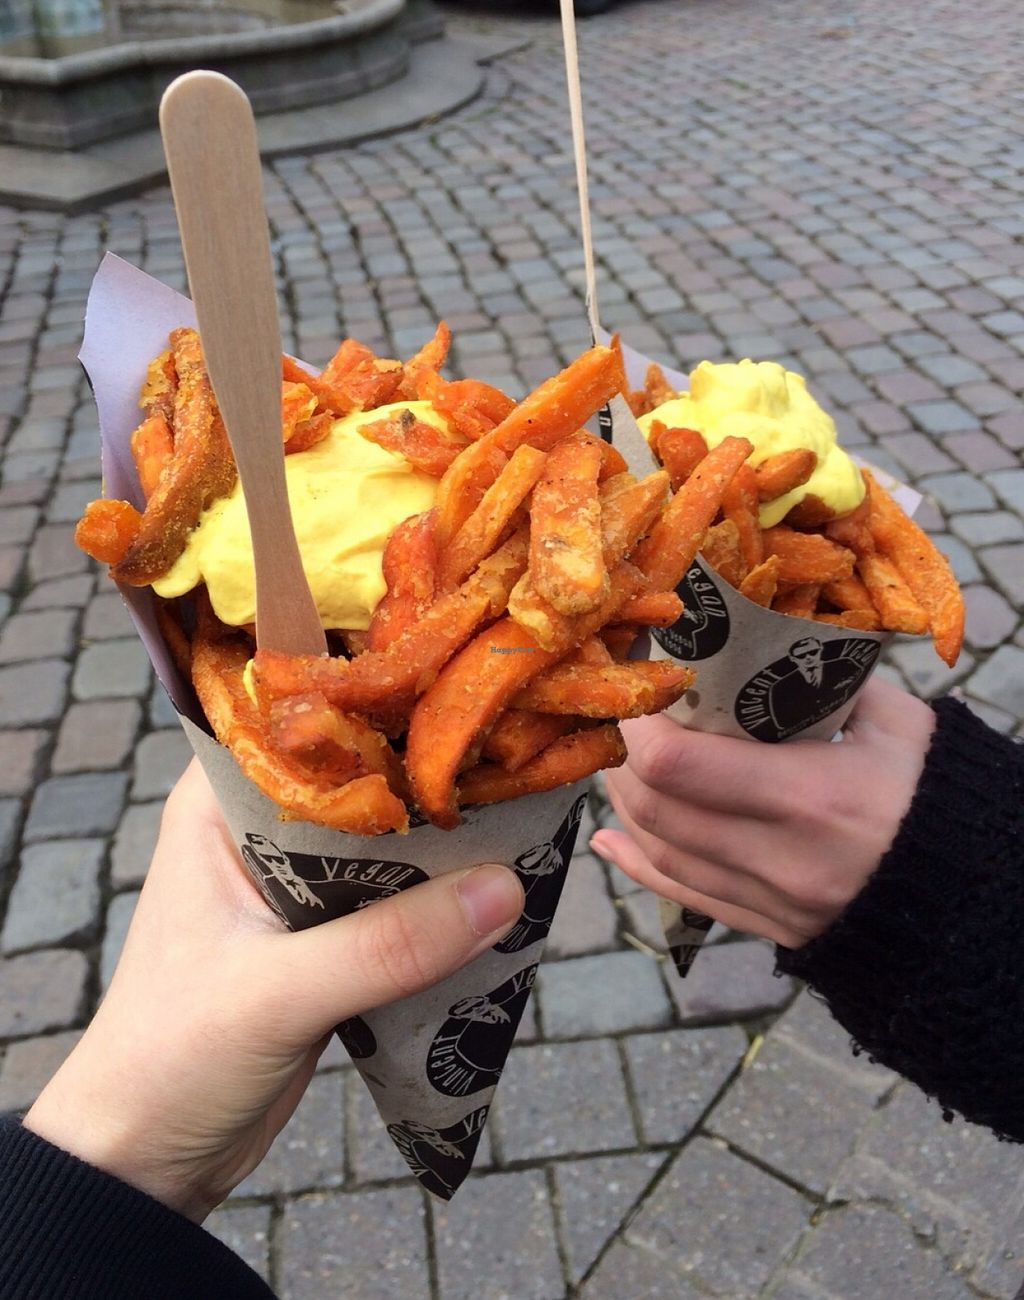 """Photo of Vincent Vegan  by <a href=""""/members/profile/Tobias%20Boletaria"""">Tobias Boletaria</a> <br/>Sweetpotato fries with garlic-turmeric-sauce <br/> December 6, 2015  - <a href='/contact/abuse/image/58276/127433'>Report</a>"""